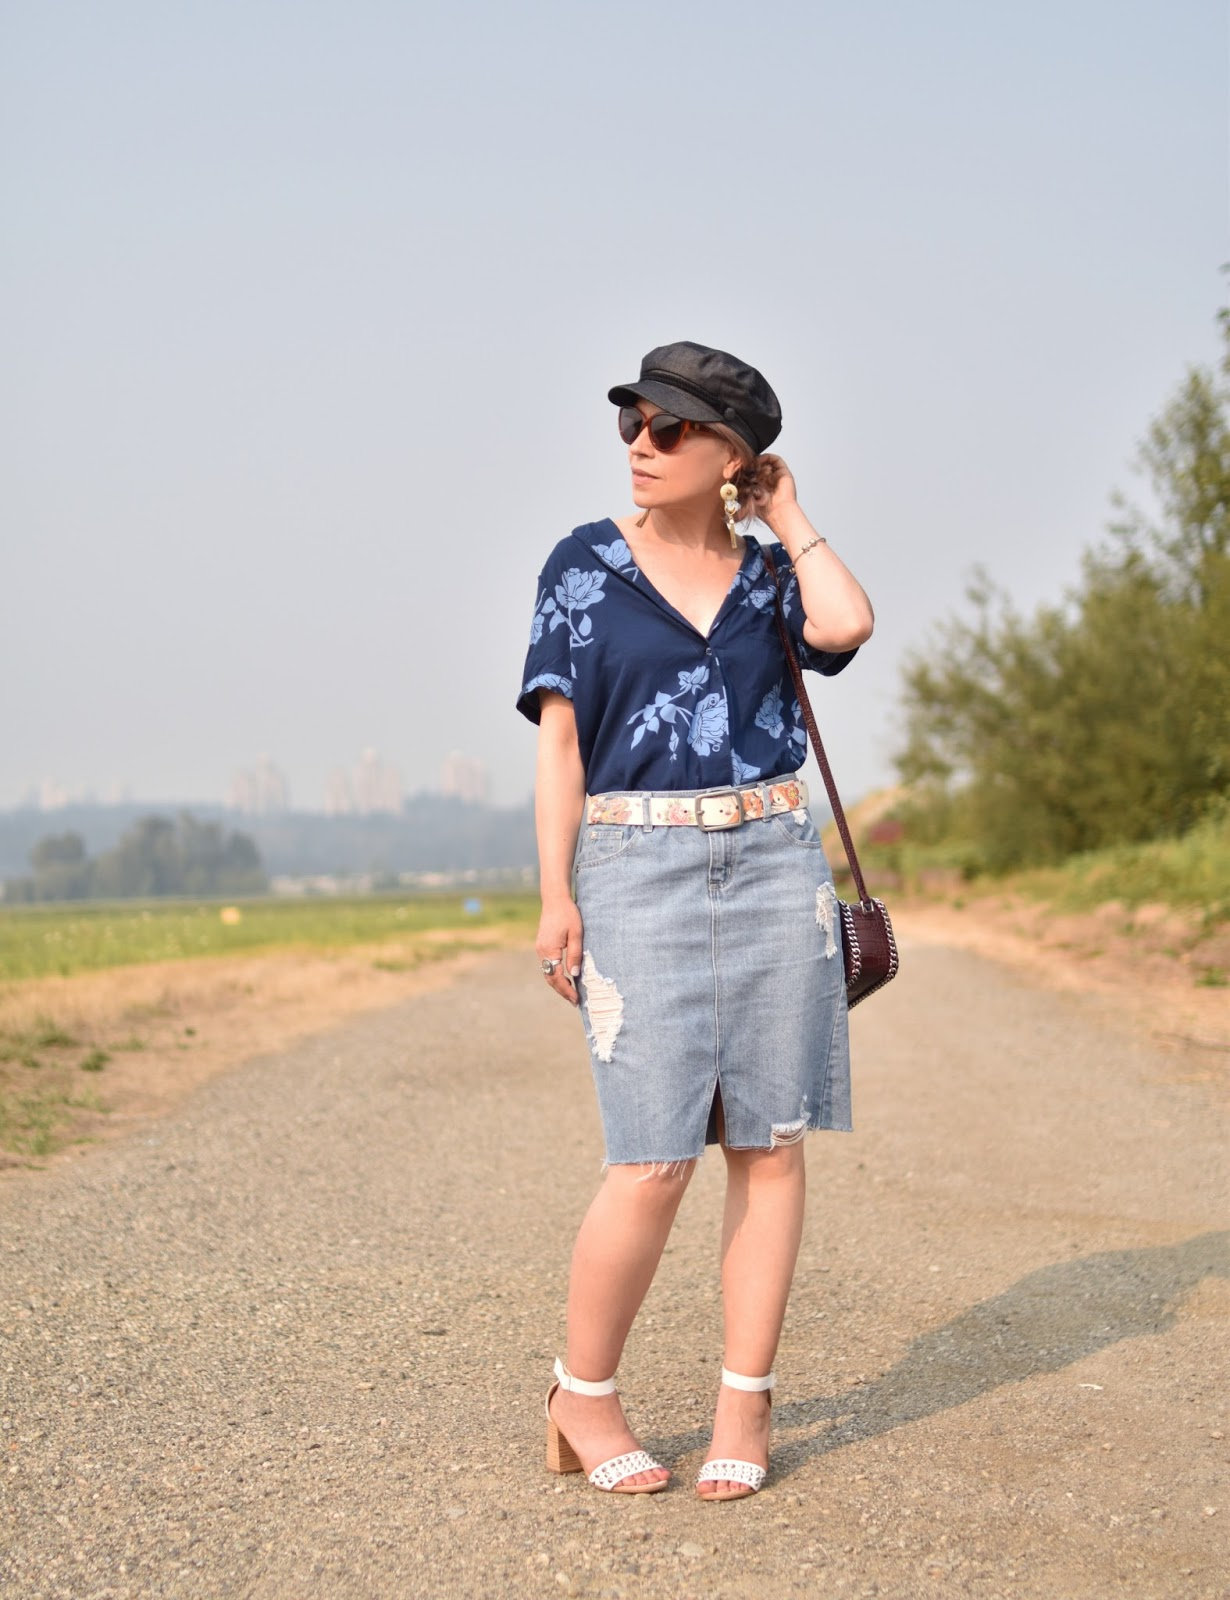 Monika Faulkner outfit inspiration - styling a pyjama top with a denim skirt, ankle-strap sandals, and a baker boy cap